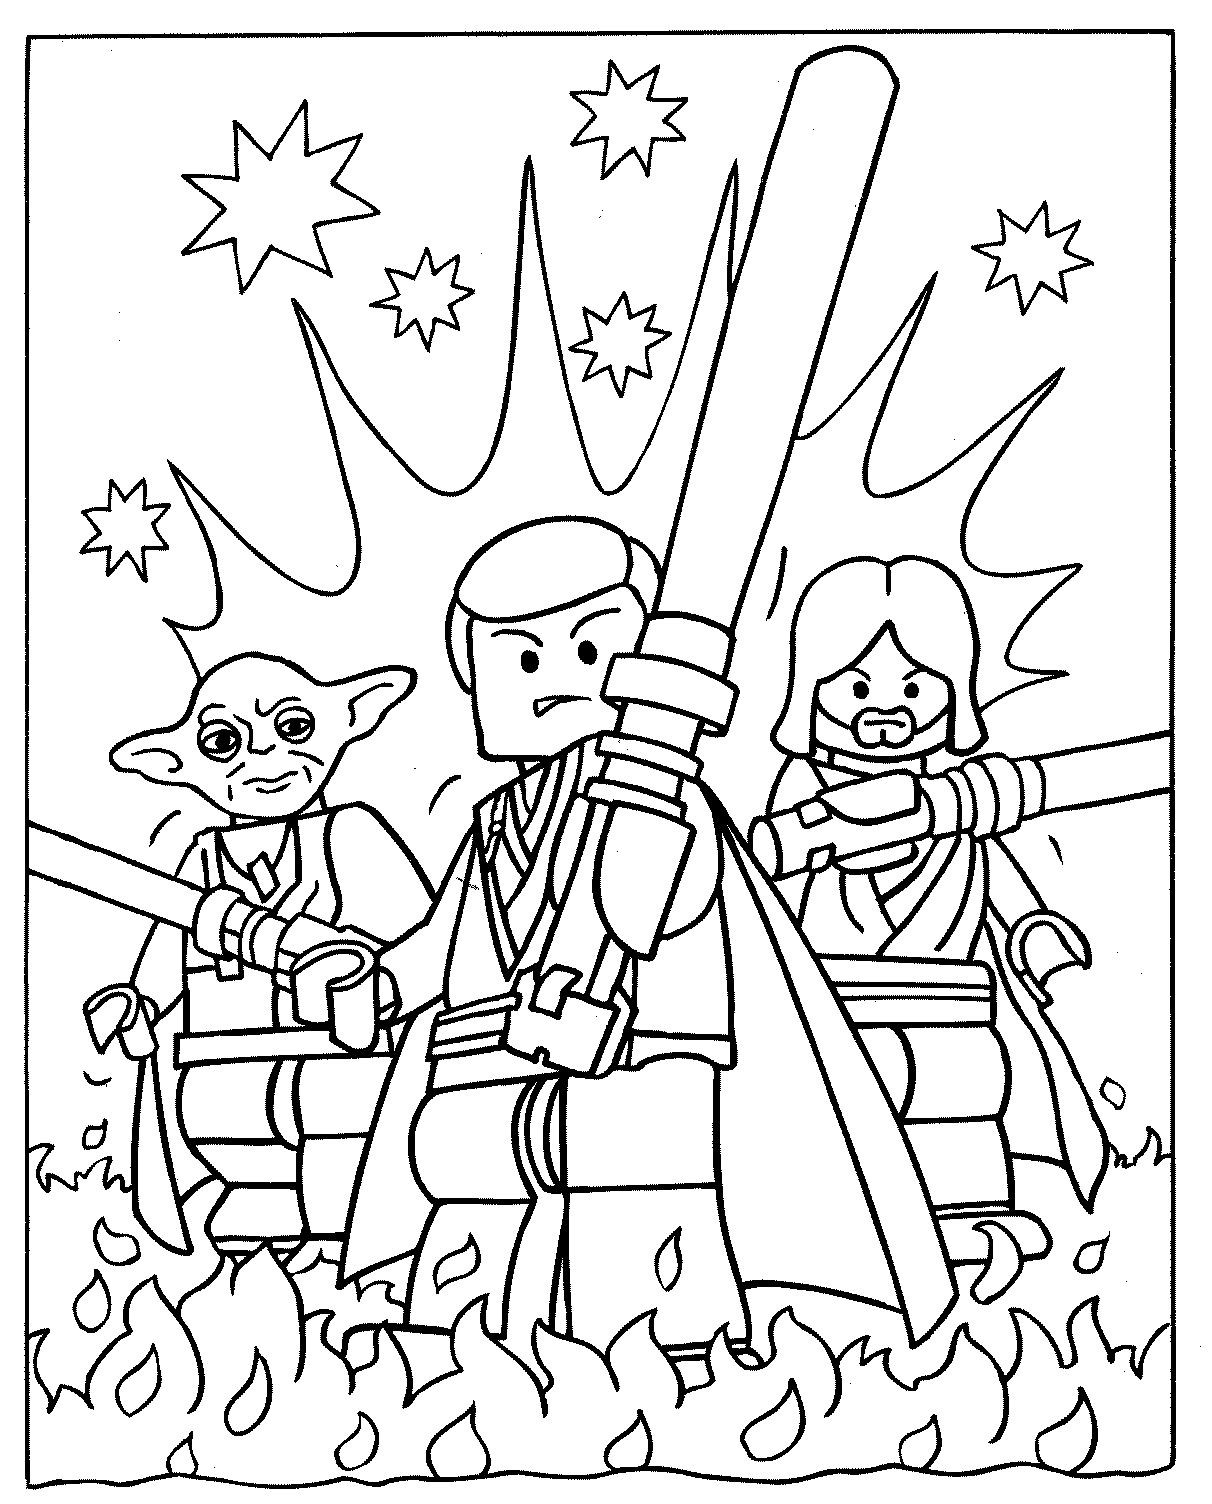 Lego Coloring Pages For Boys  Lego Star Wars coloring pages